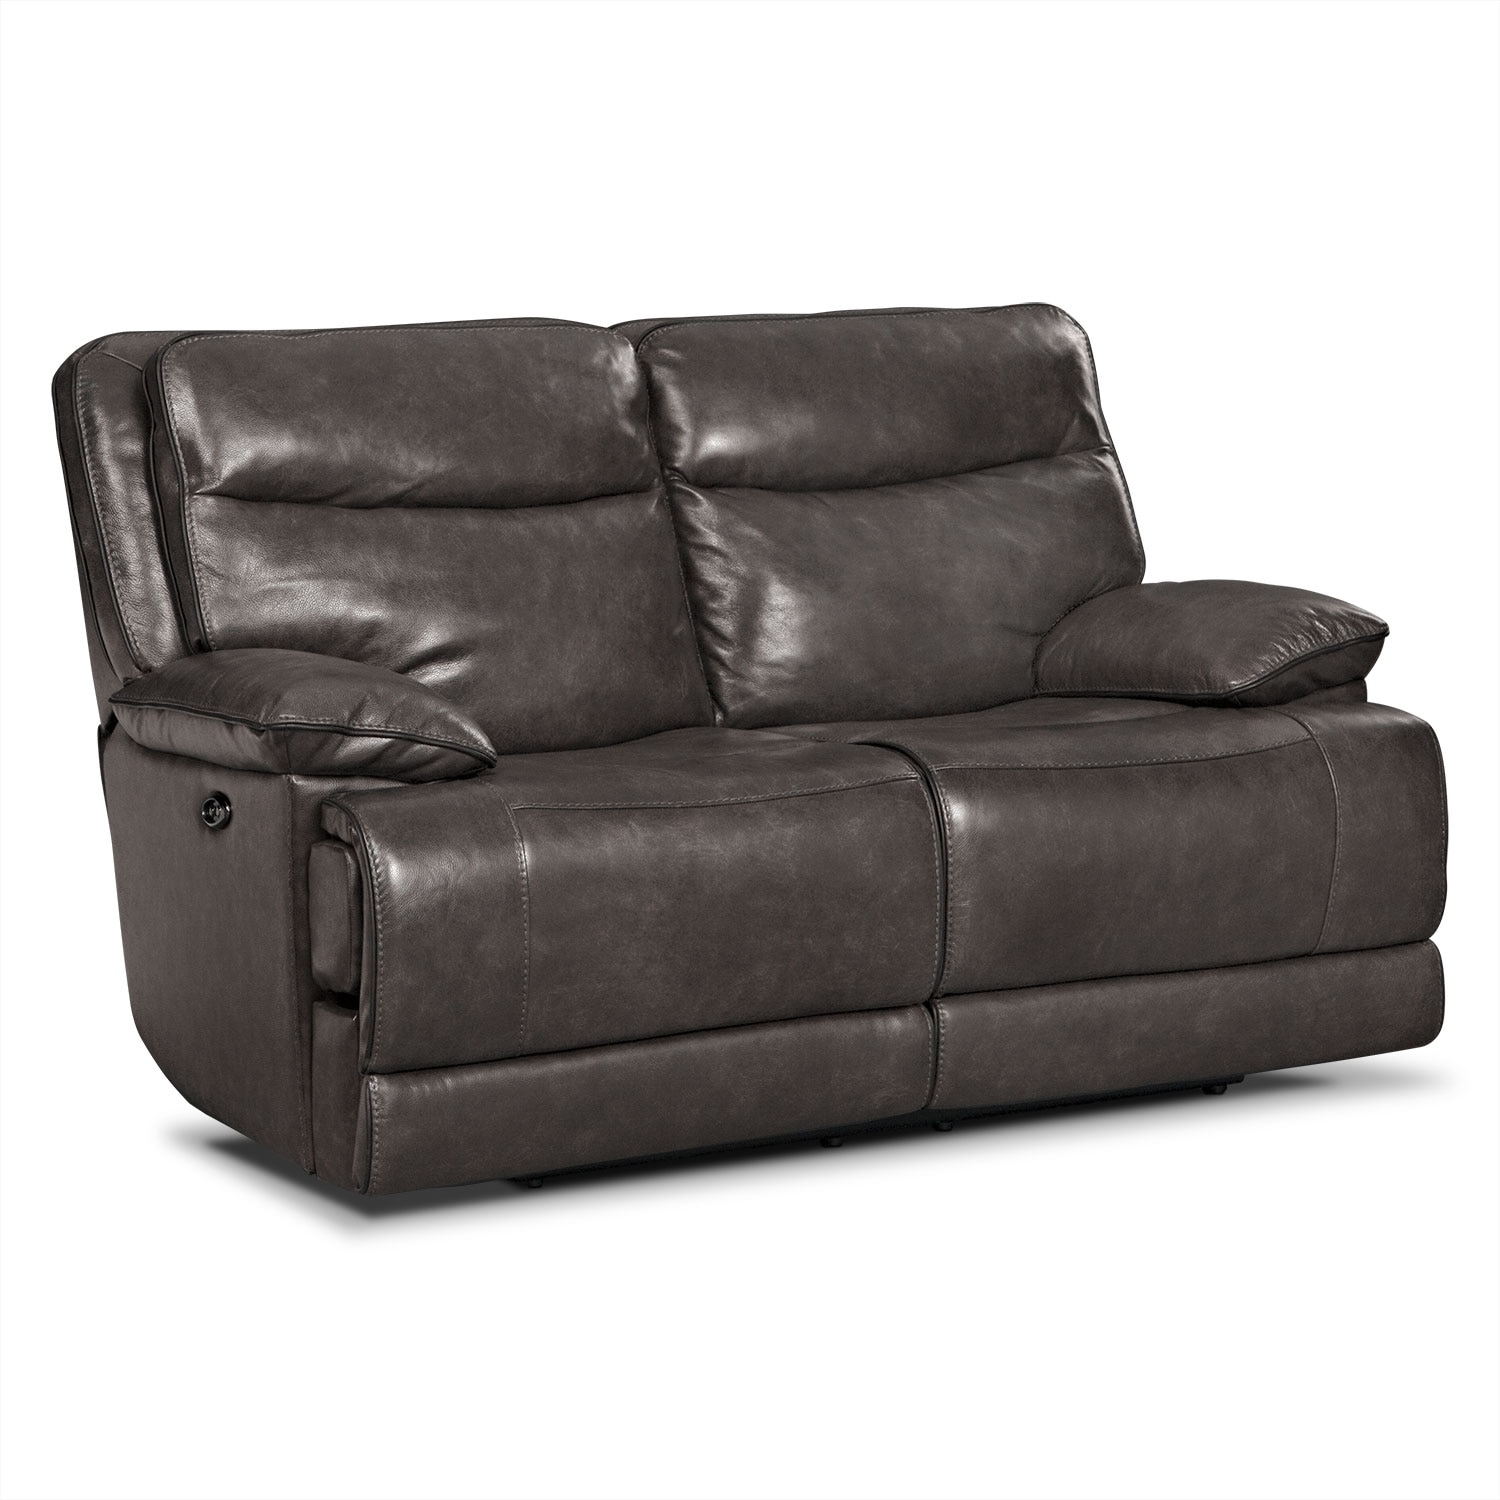 Living Room Furniture - Monaco Power Reclining Loveseat